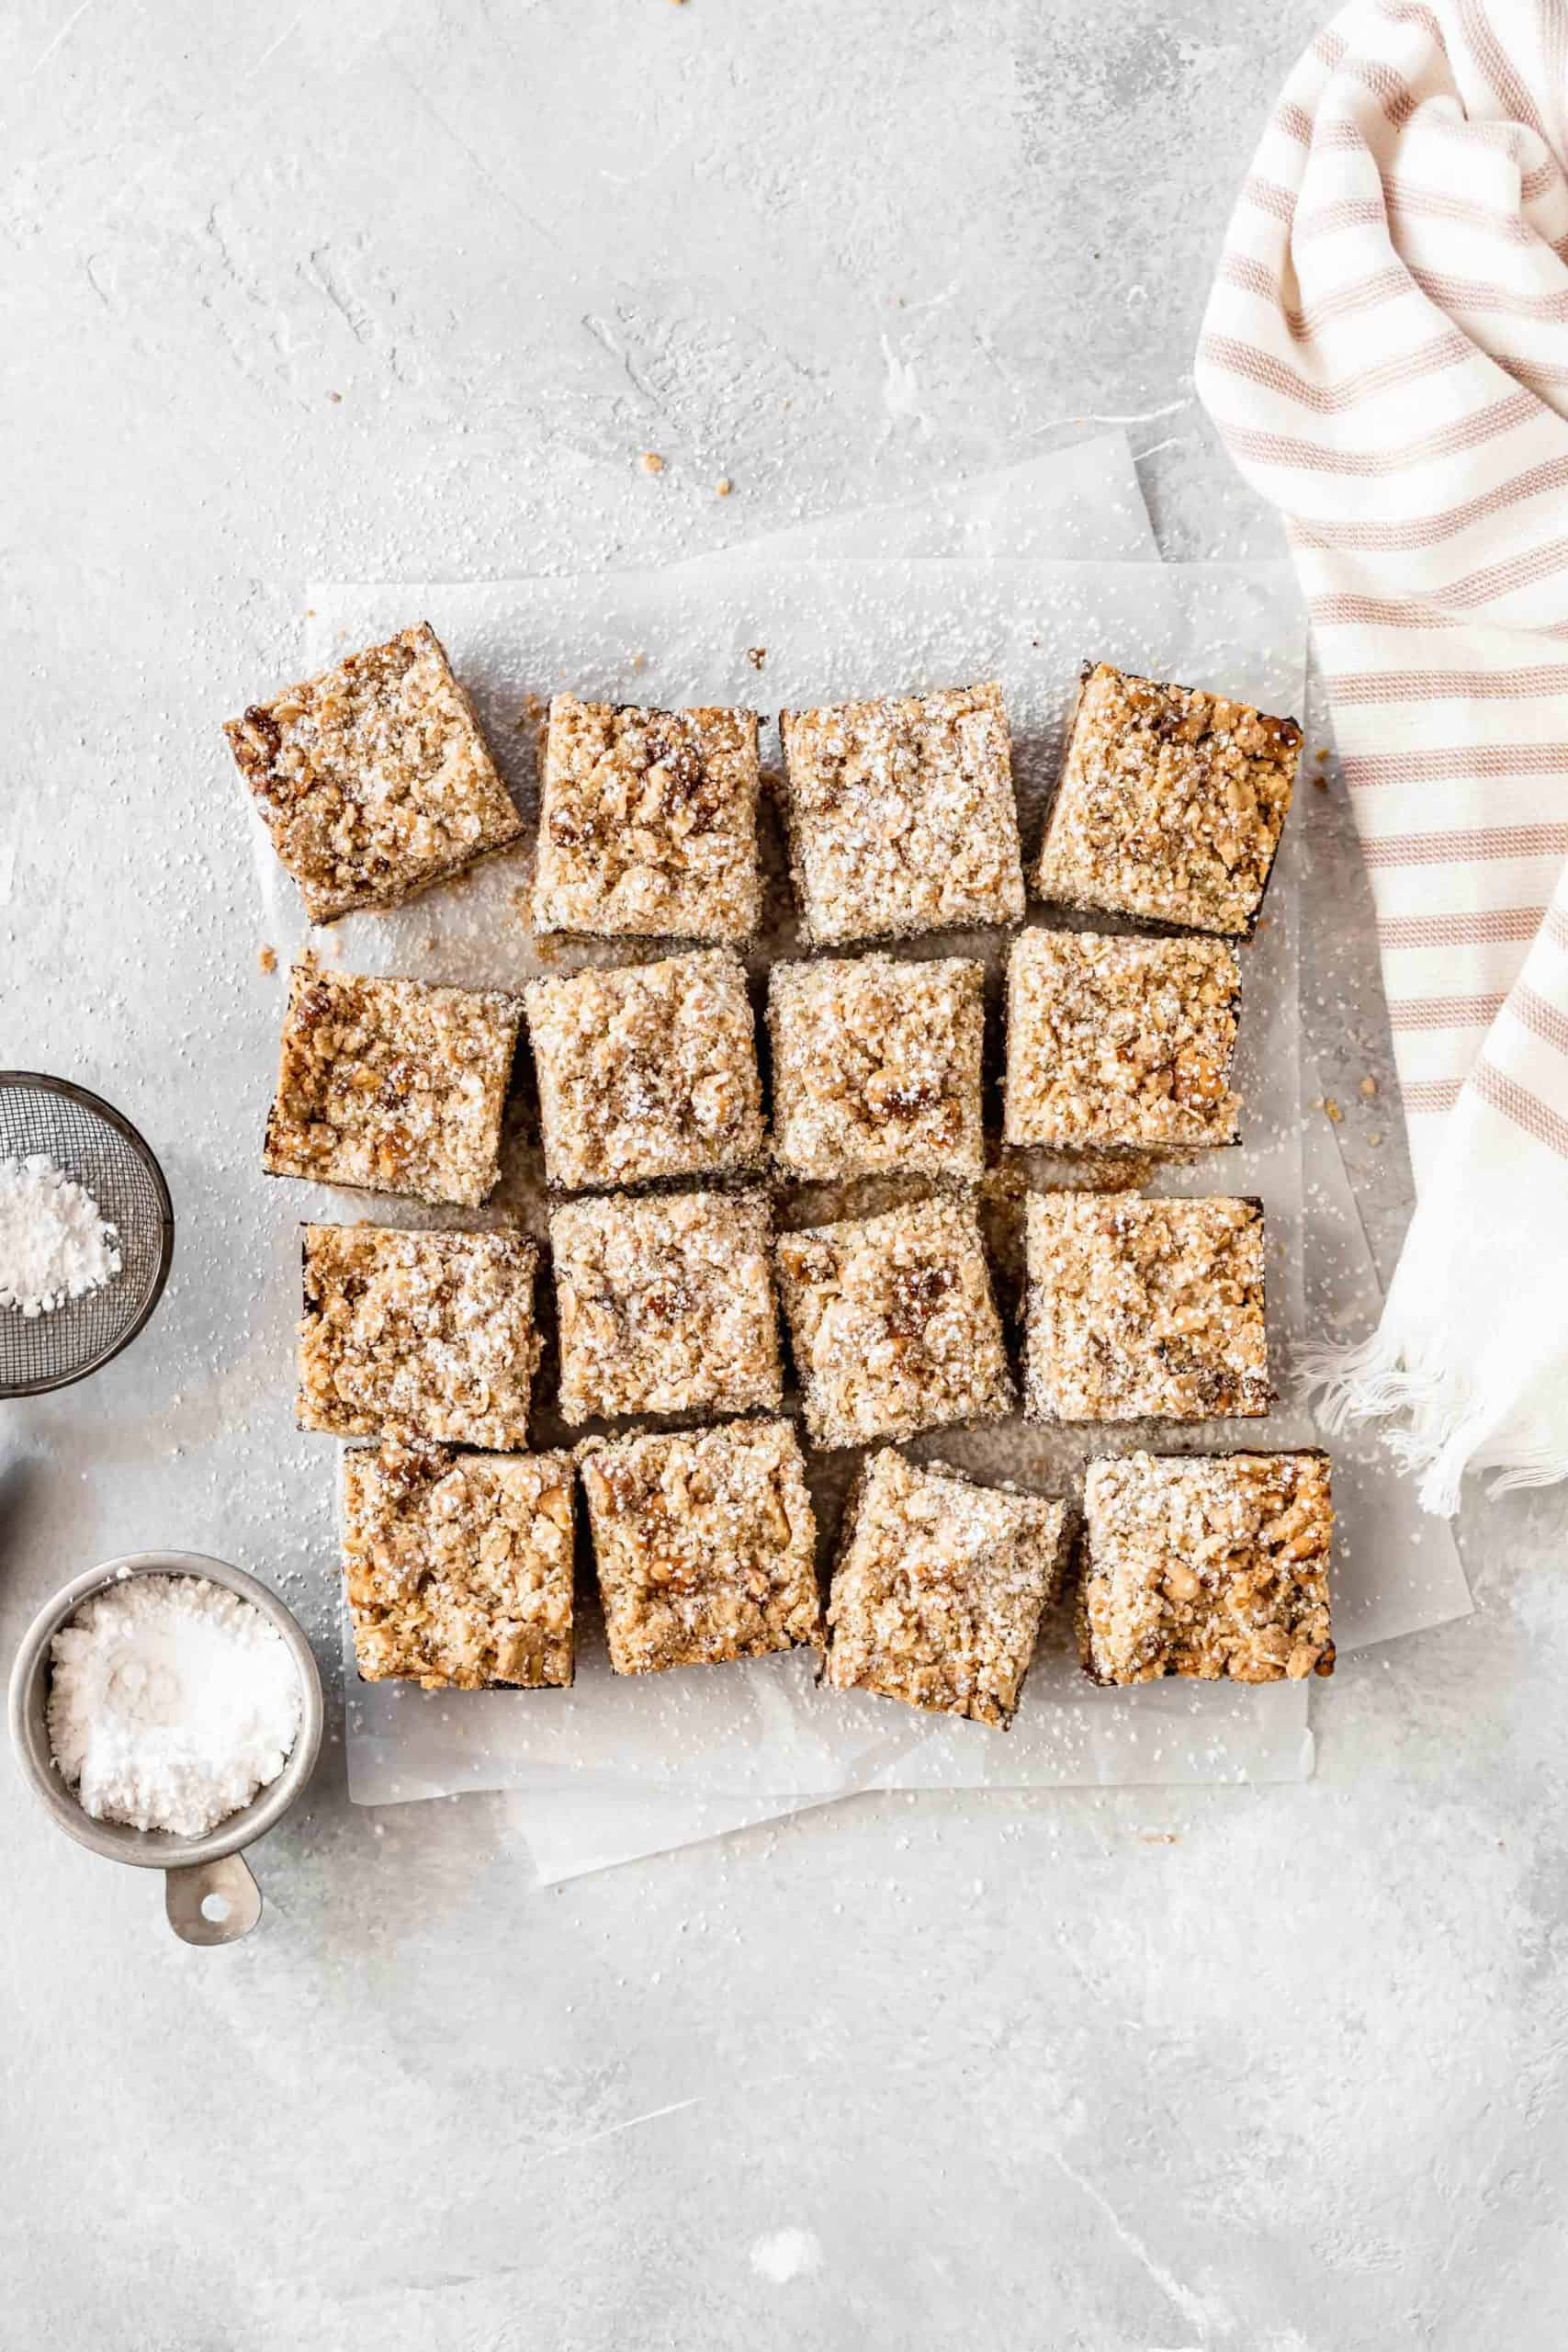 chocolate oat bars on parchment paper